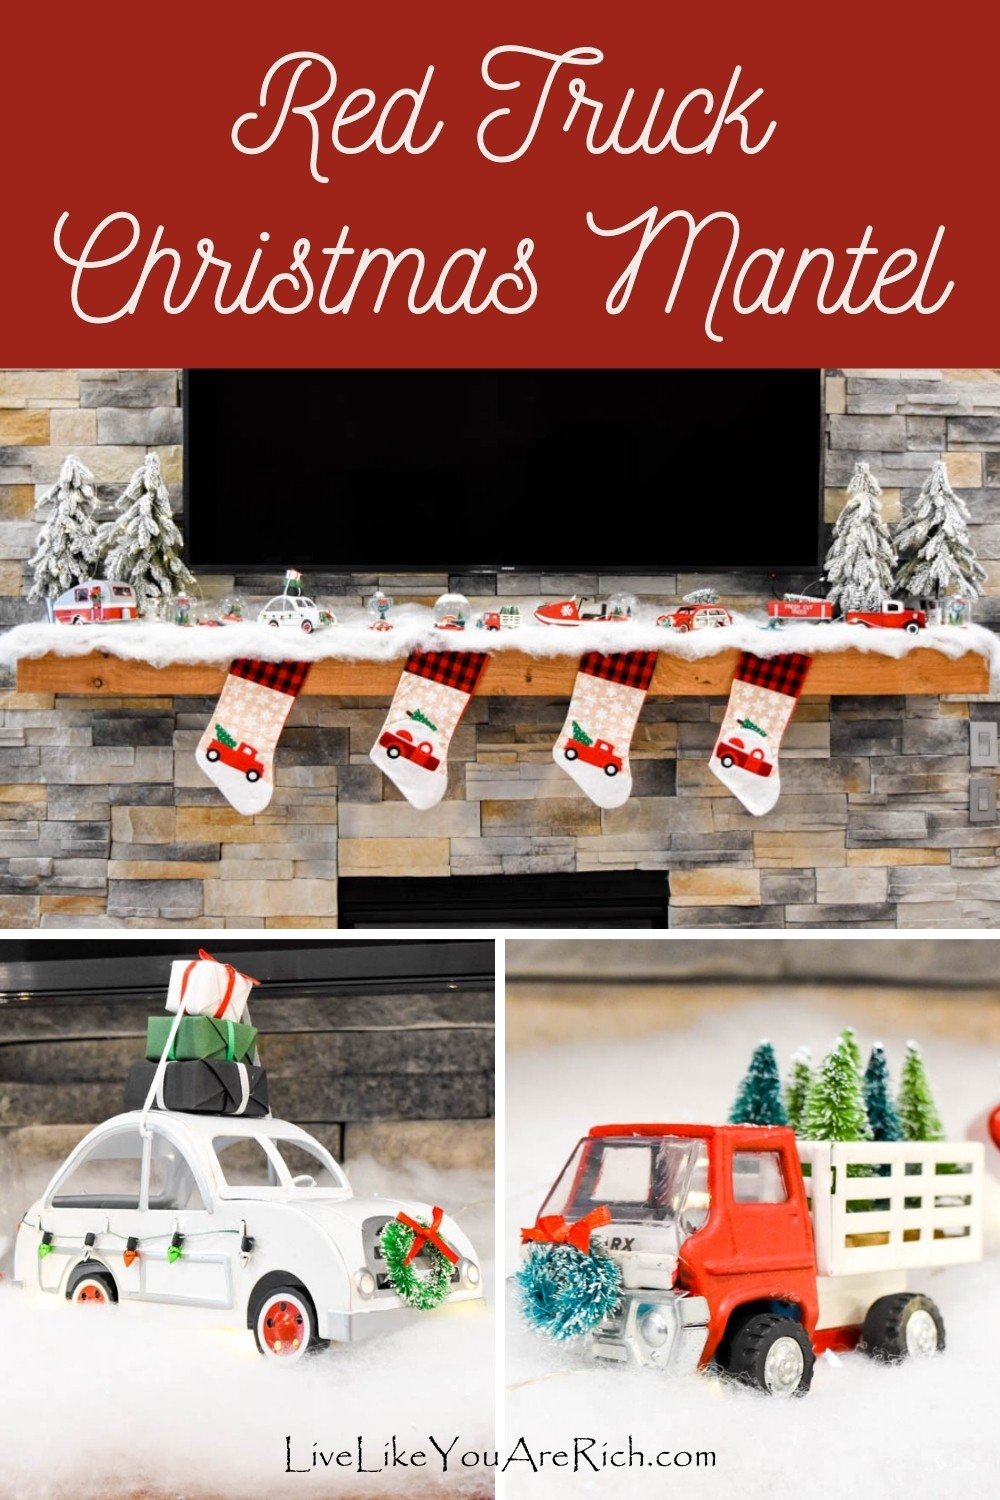 This year, 2020, I made a Red Truck Christmas Mantel scene above my fireplace. Over the past couple of years, the Red Truck Christmas tree decor started popping up here and there. Whenever I saw it, I thought it was so cute! I don't always hop on the trendy-decor-bandwagon, but with this theme I totally did because I love it.